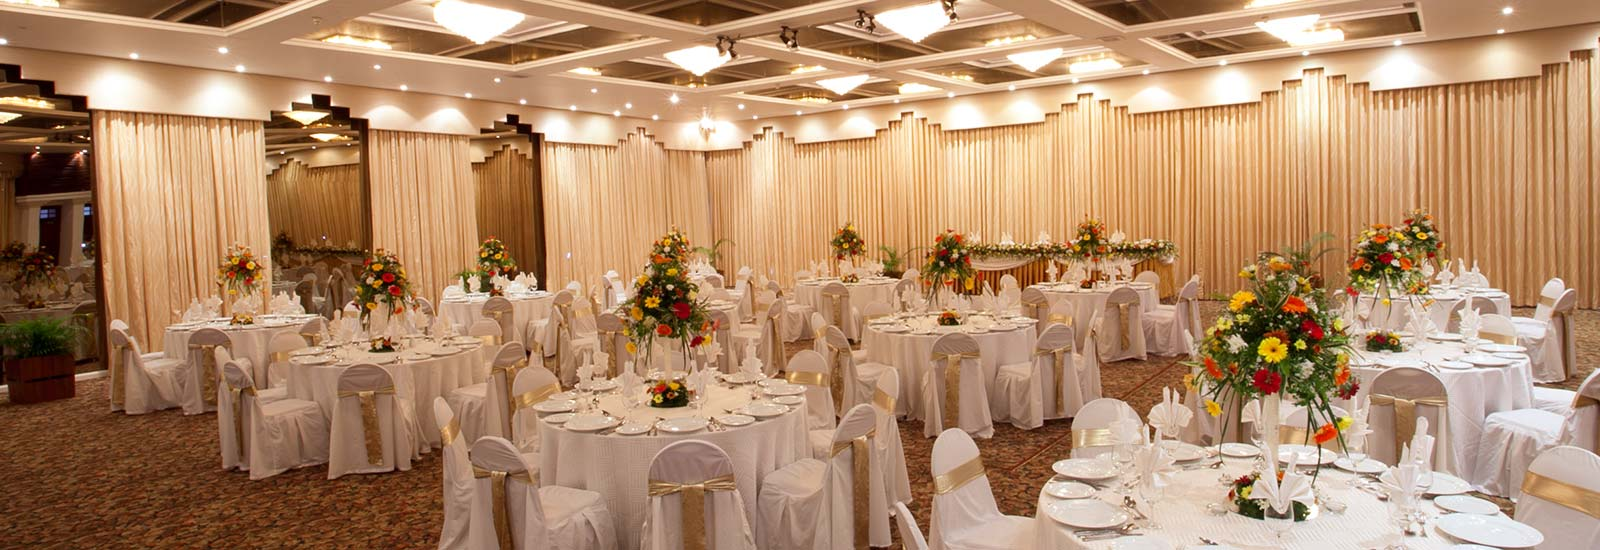 wedding-and-events-5